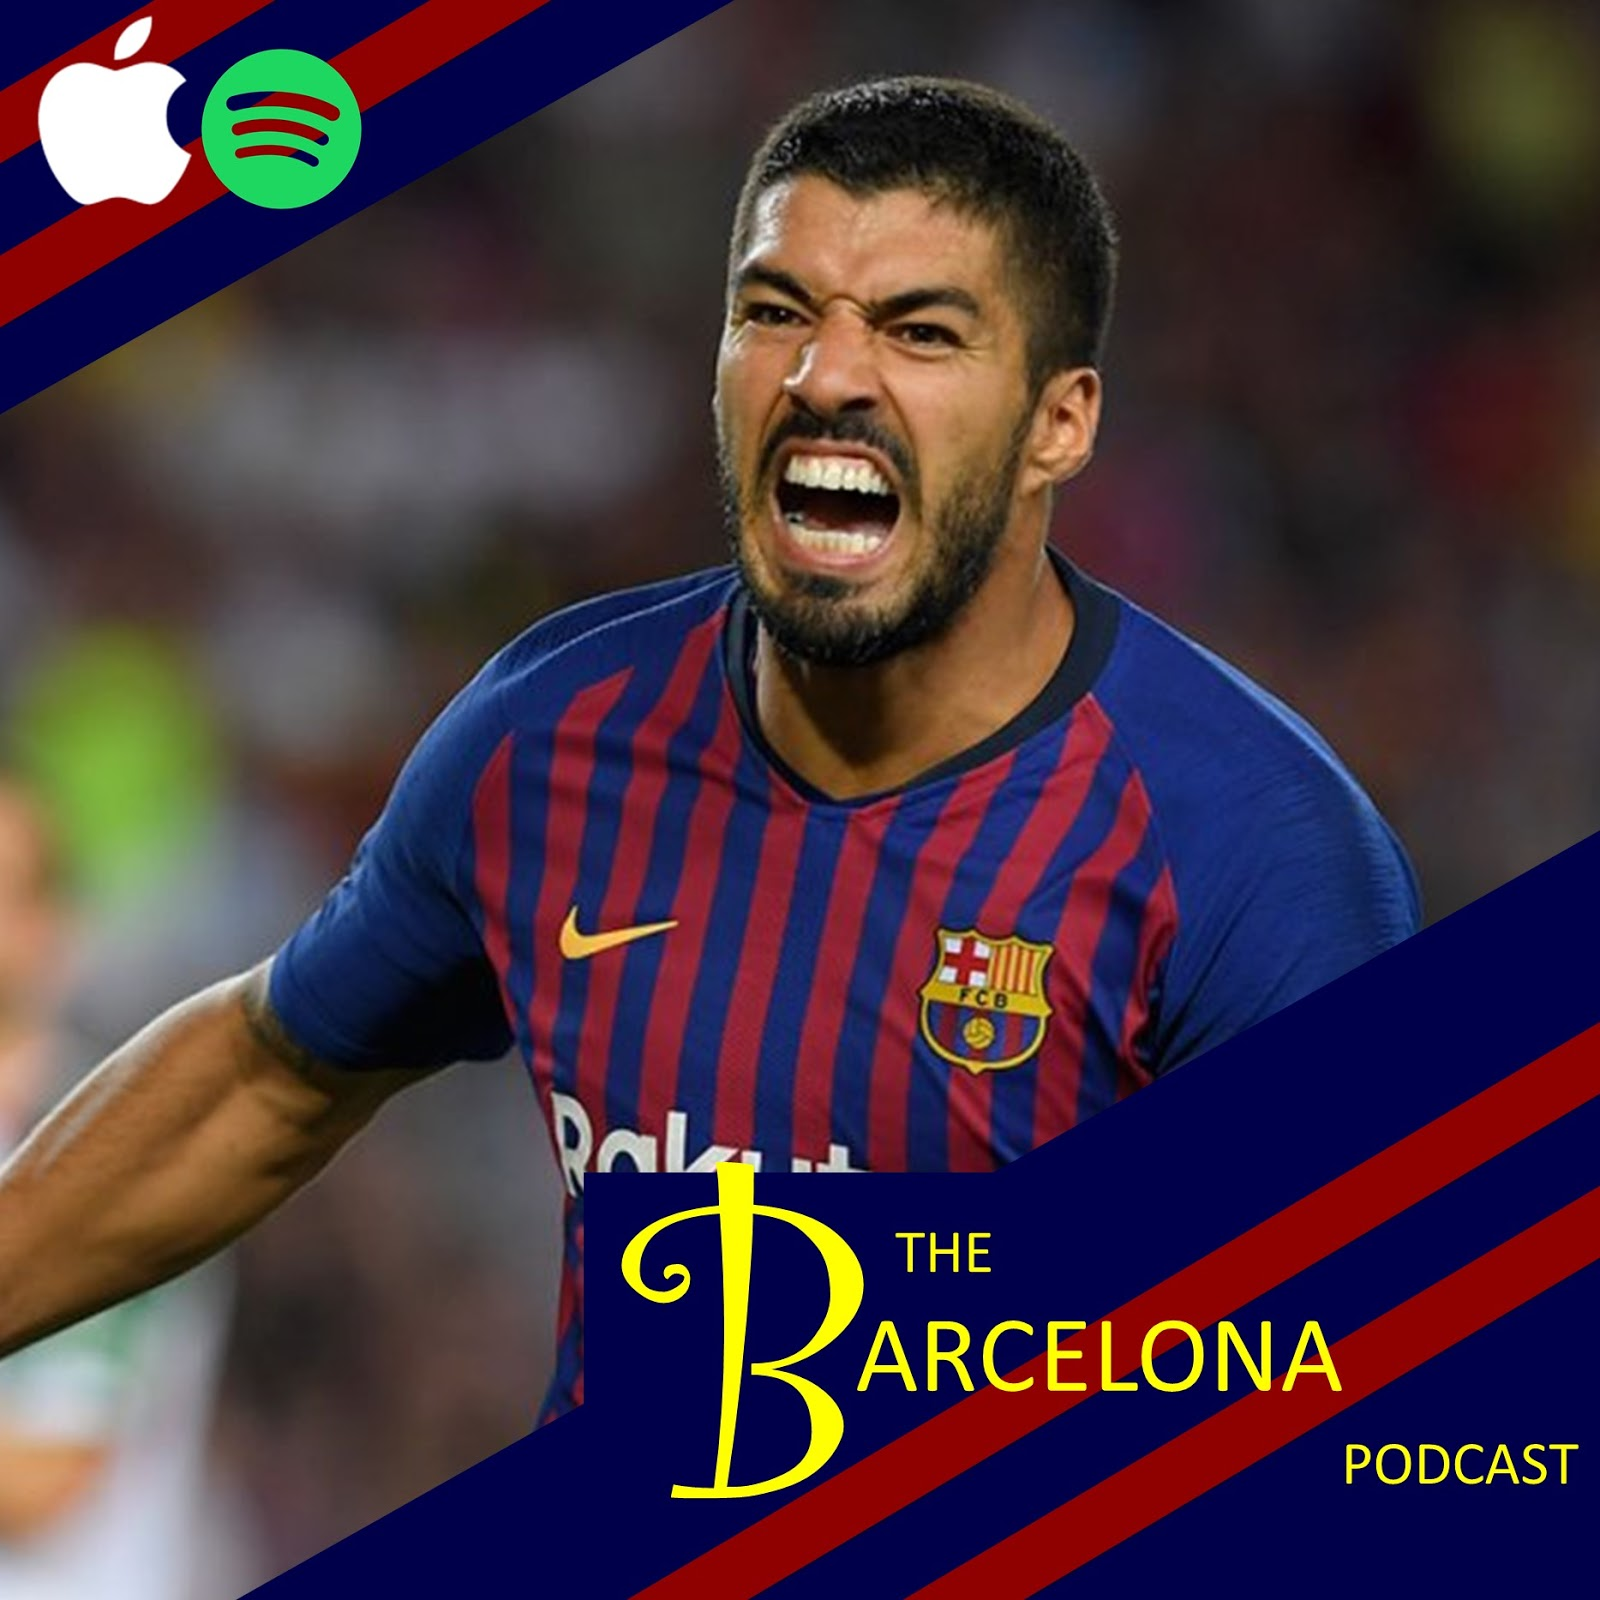 Luis Suarez Not Our C Any More: Is Luis Suarez Starting Slow Or Over The Hill? Rafinha And